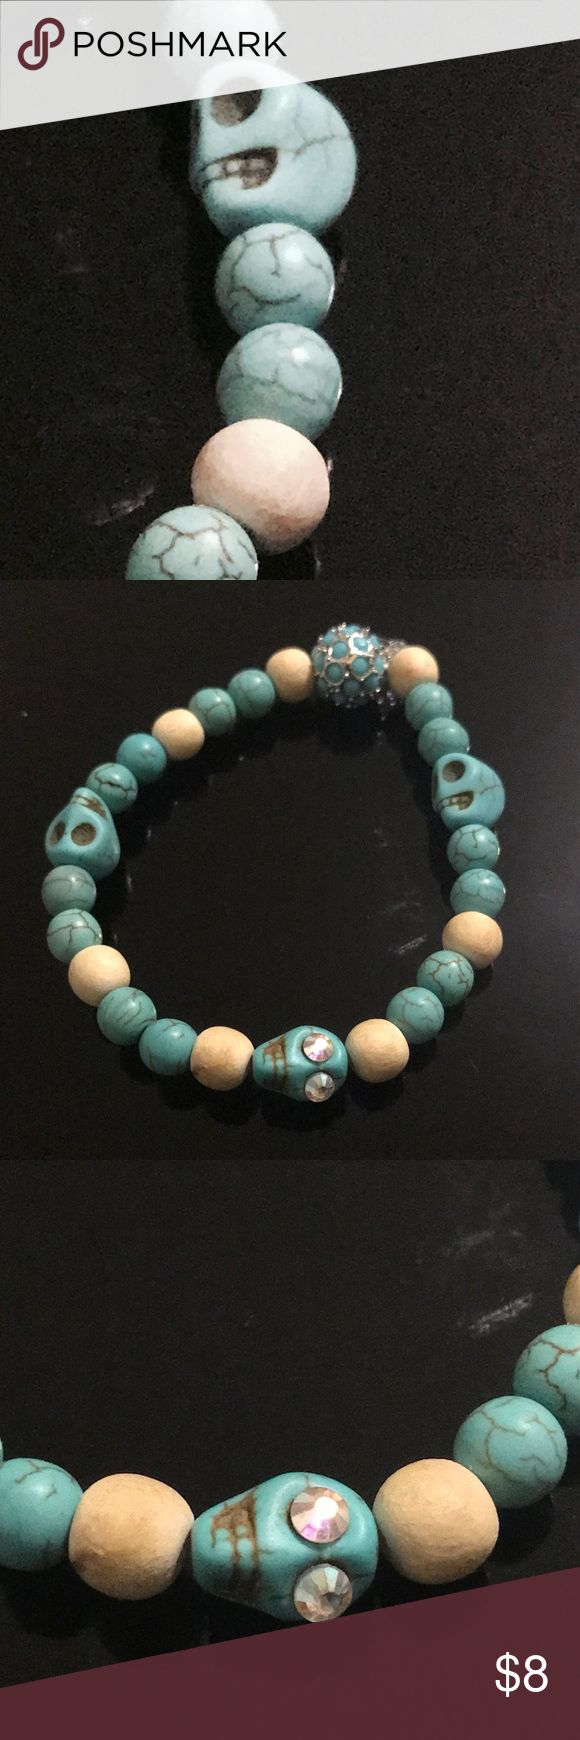 Magnesite skull bead bracelet Turquoise magnesite beads with lovely skull spacers and wooden beads. Jewelry Bracelets